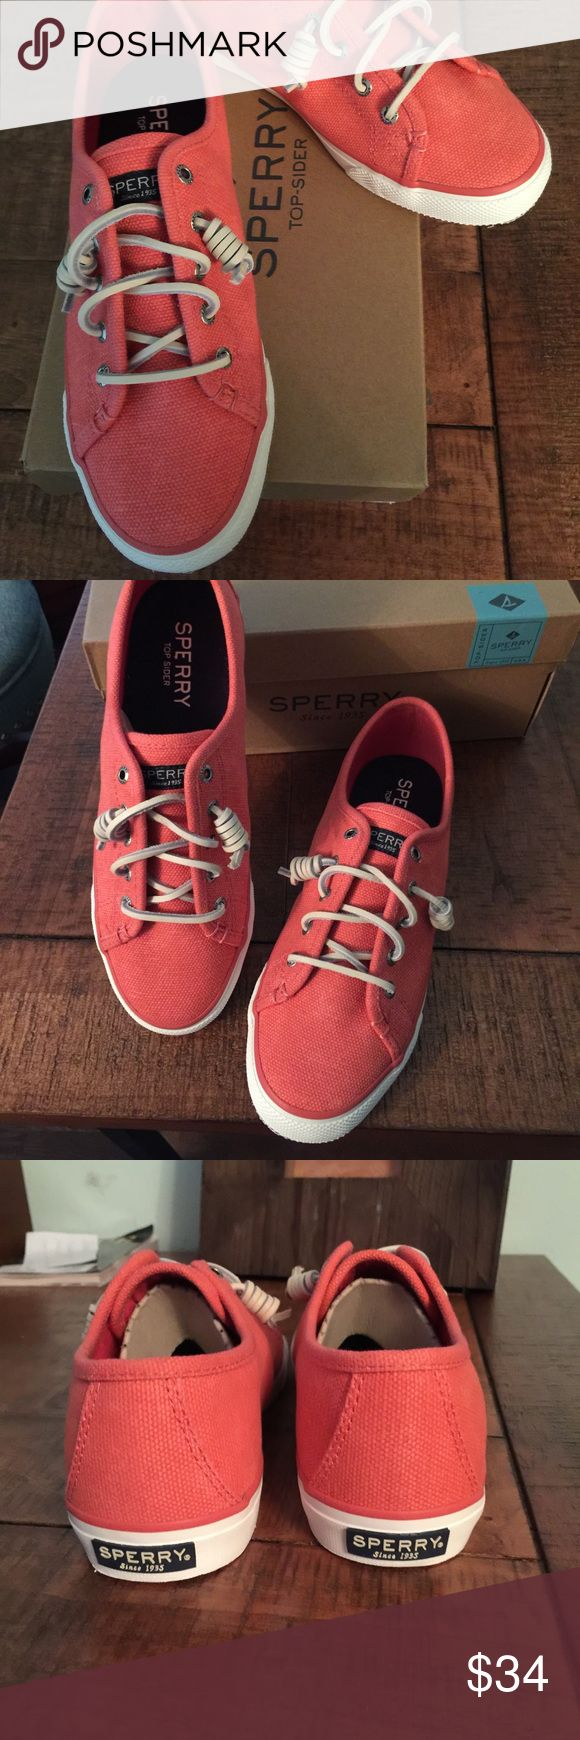 Ladies Sperry Canvas Shoes. Brand new in box. Cute Sperrys in coral. Size 8. Sperry Shoes Flats & Loafers